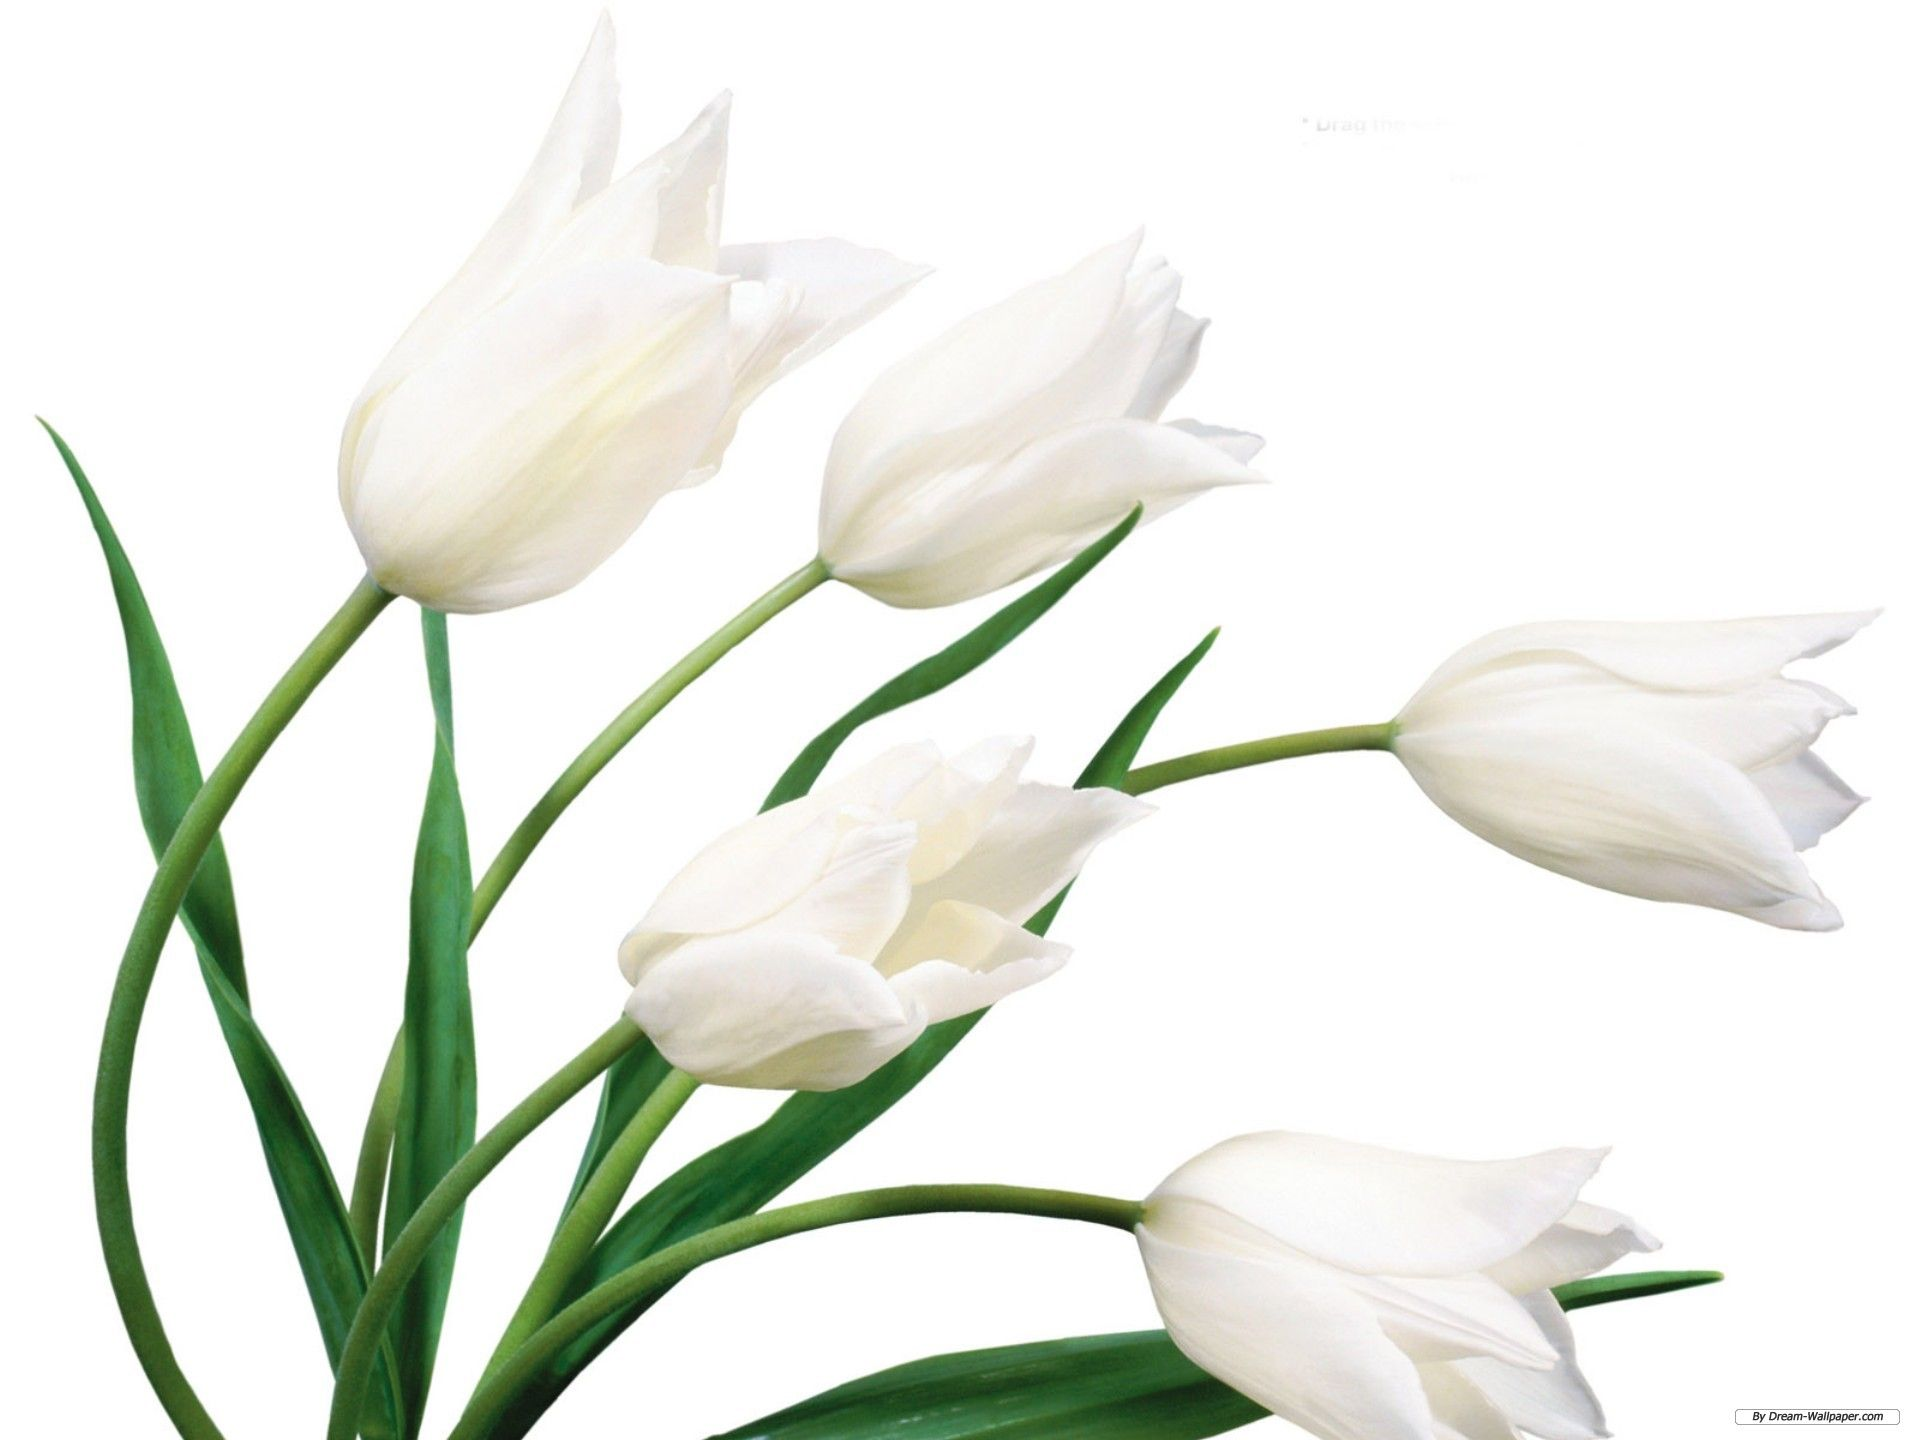 White lily wallpapers mobile with high definition resolution white lily wallpapers mobile with high definition resolution 1920x1440 px 17651 kb izmirmasajfo